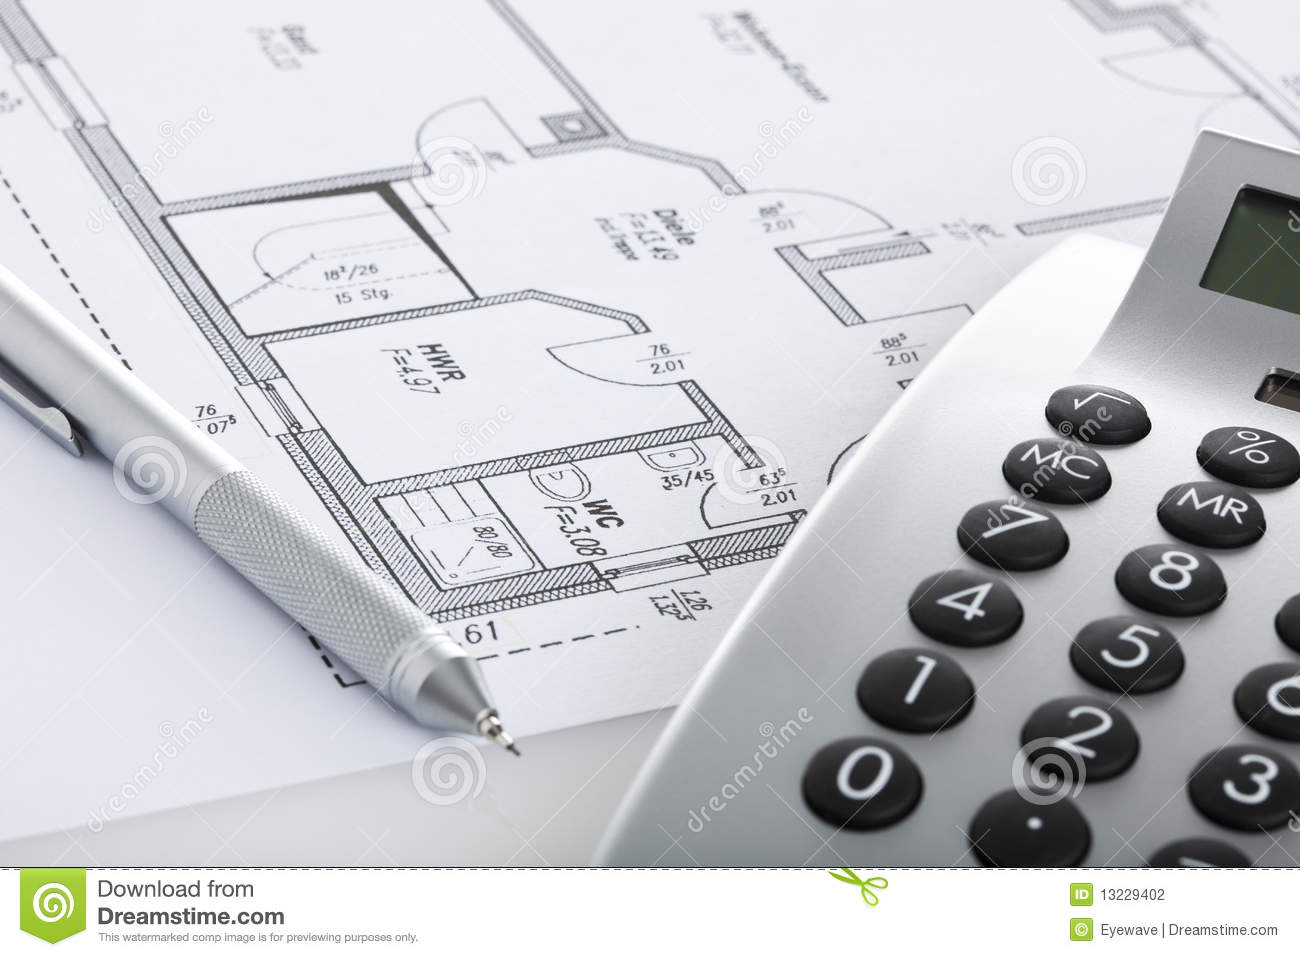 Pencil and calculator on blueprint of floor plan stock for Blueprint estimator